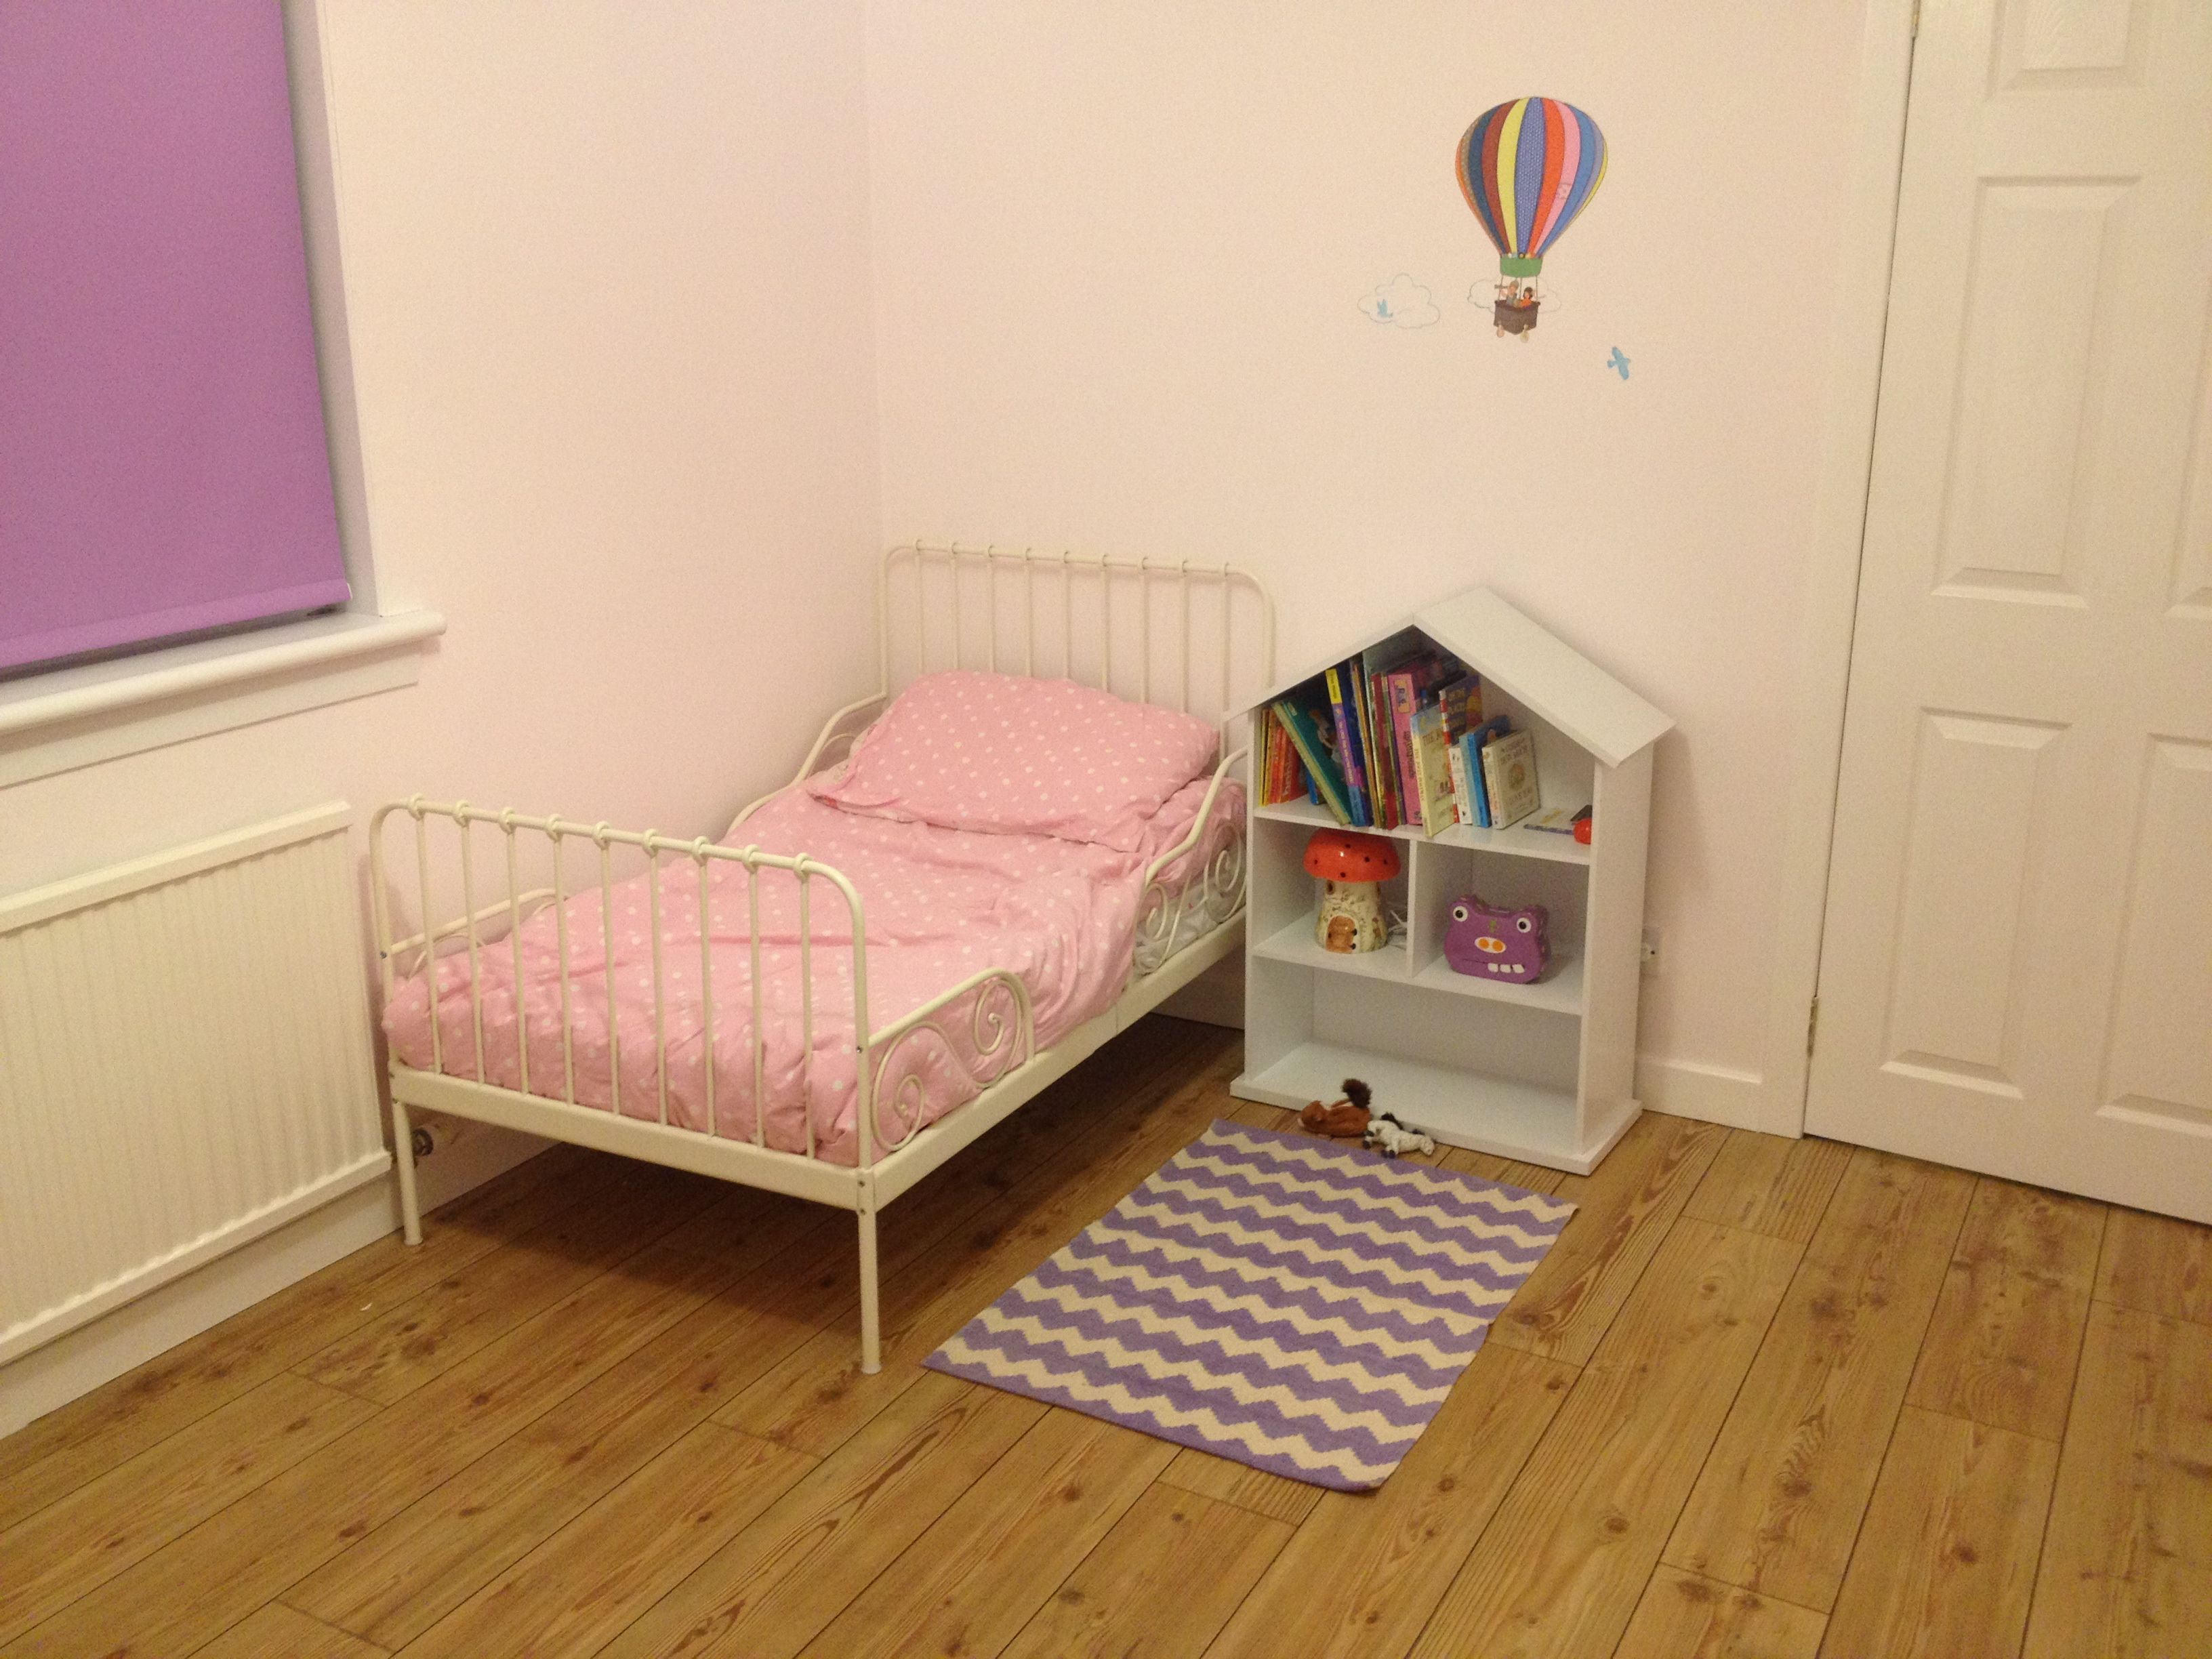 belle and boo wall stickers, ikea minnen bed | our girls' room